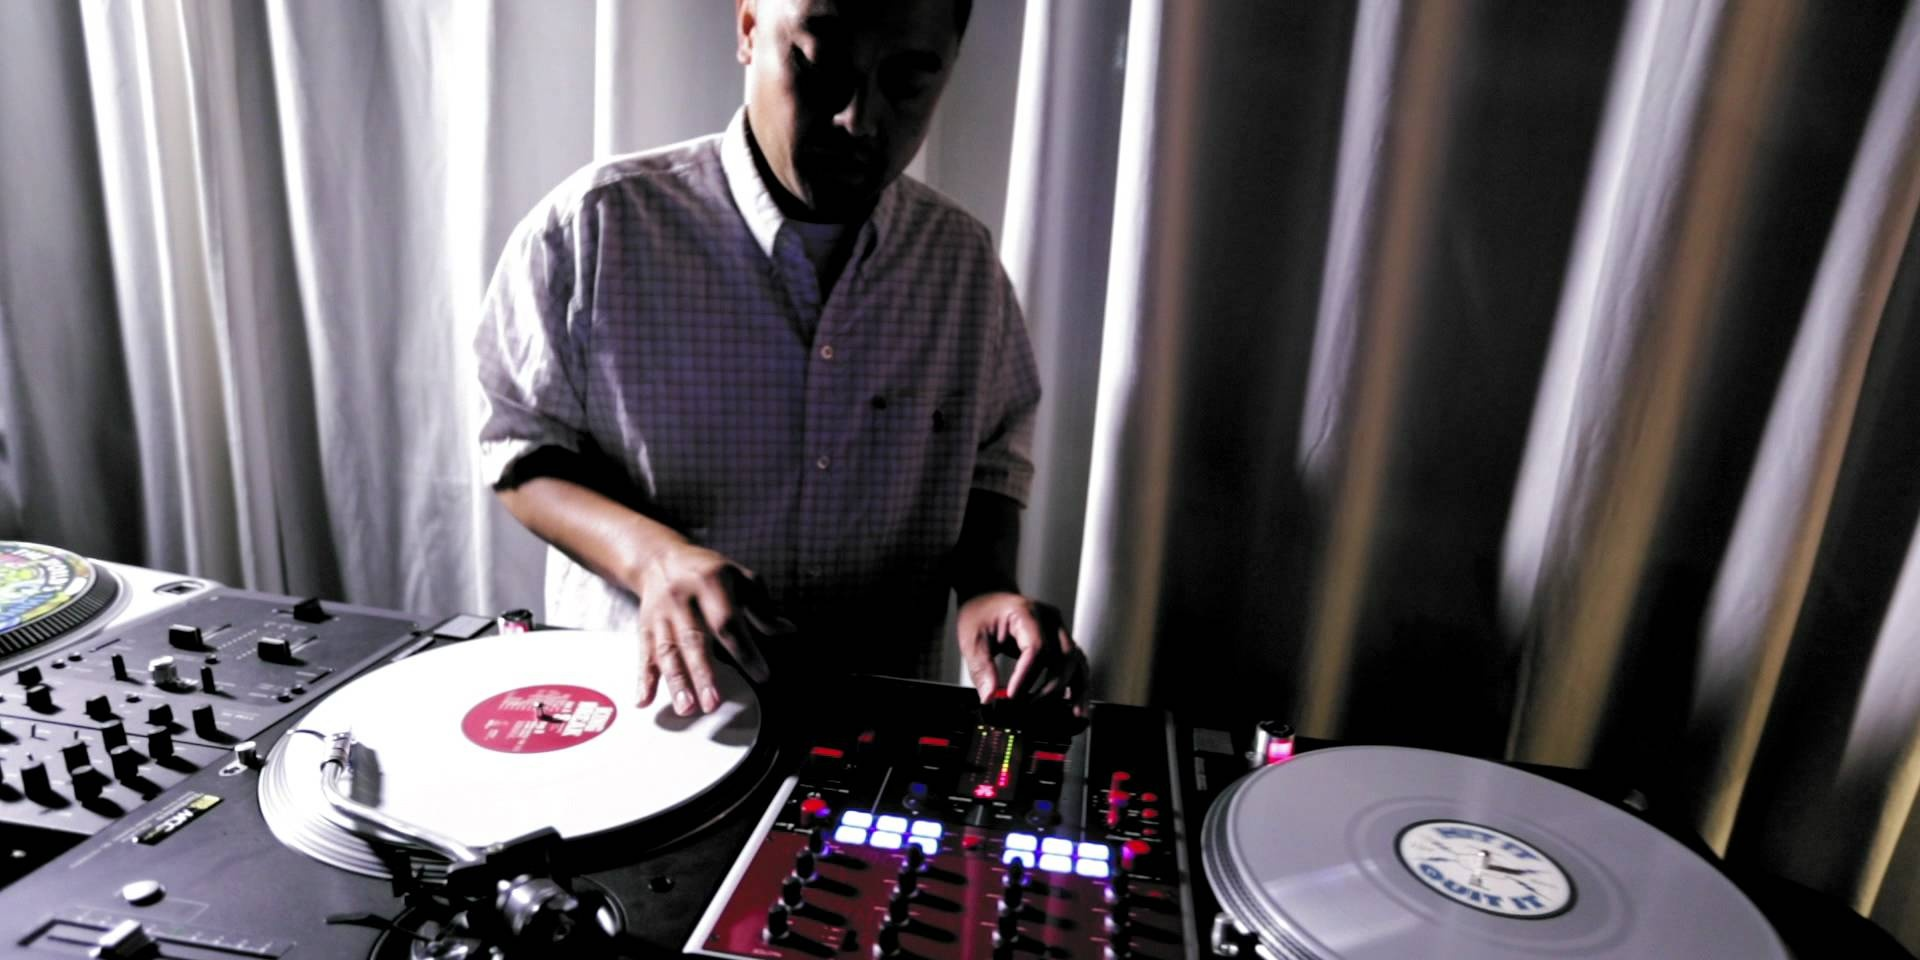 What should newbie DJs look for? We ask the experts